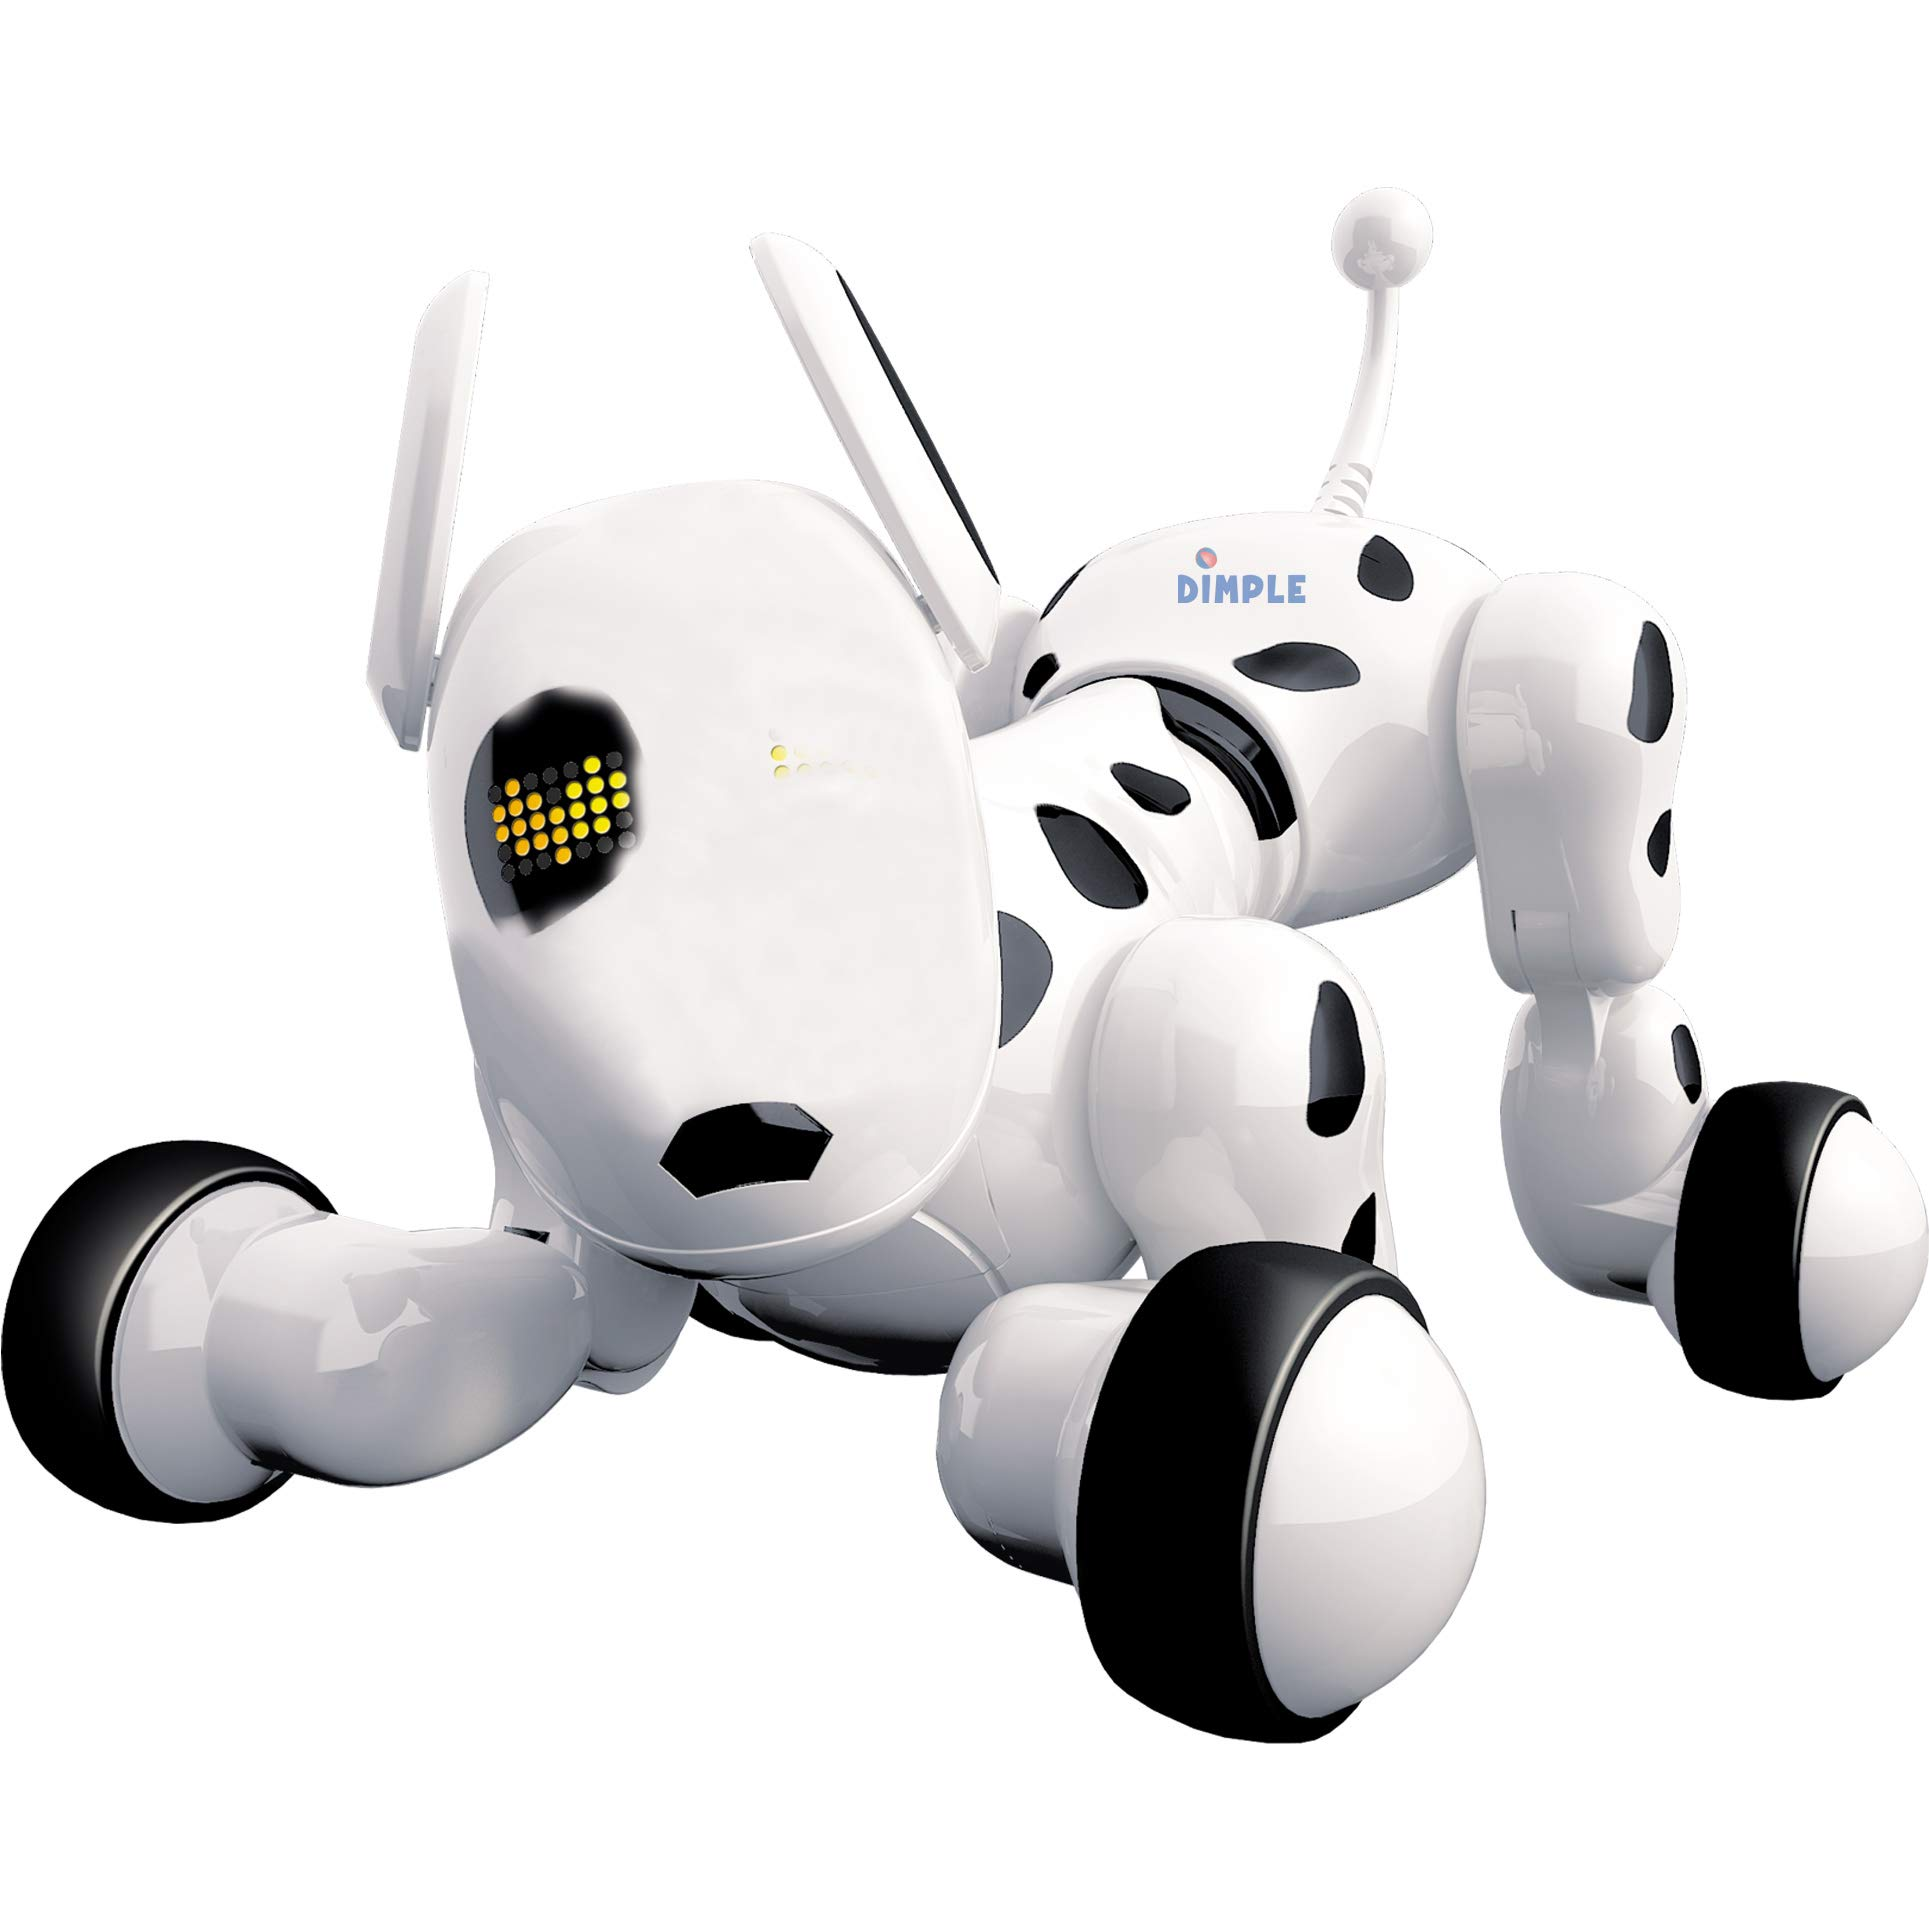 Dimple Interactive Robot Puppy With Wireless Remote Control RC Animal Dog Toy That Sings, Dances, Eye Mode, Speaks for Boys/Girls, Perfect Gift for Kids. by Dimple (Image #2)